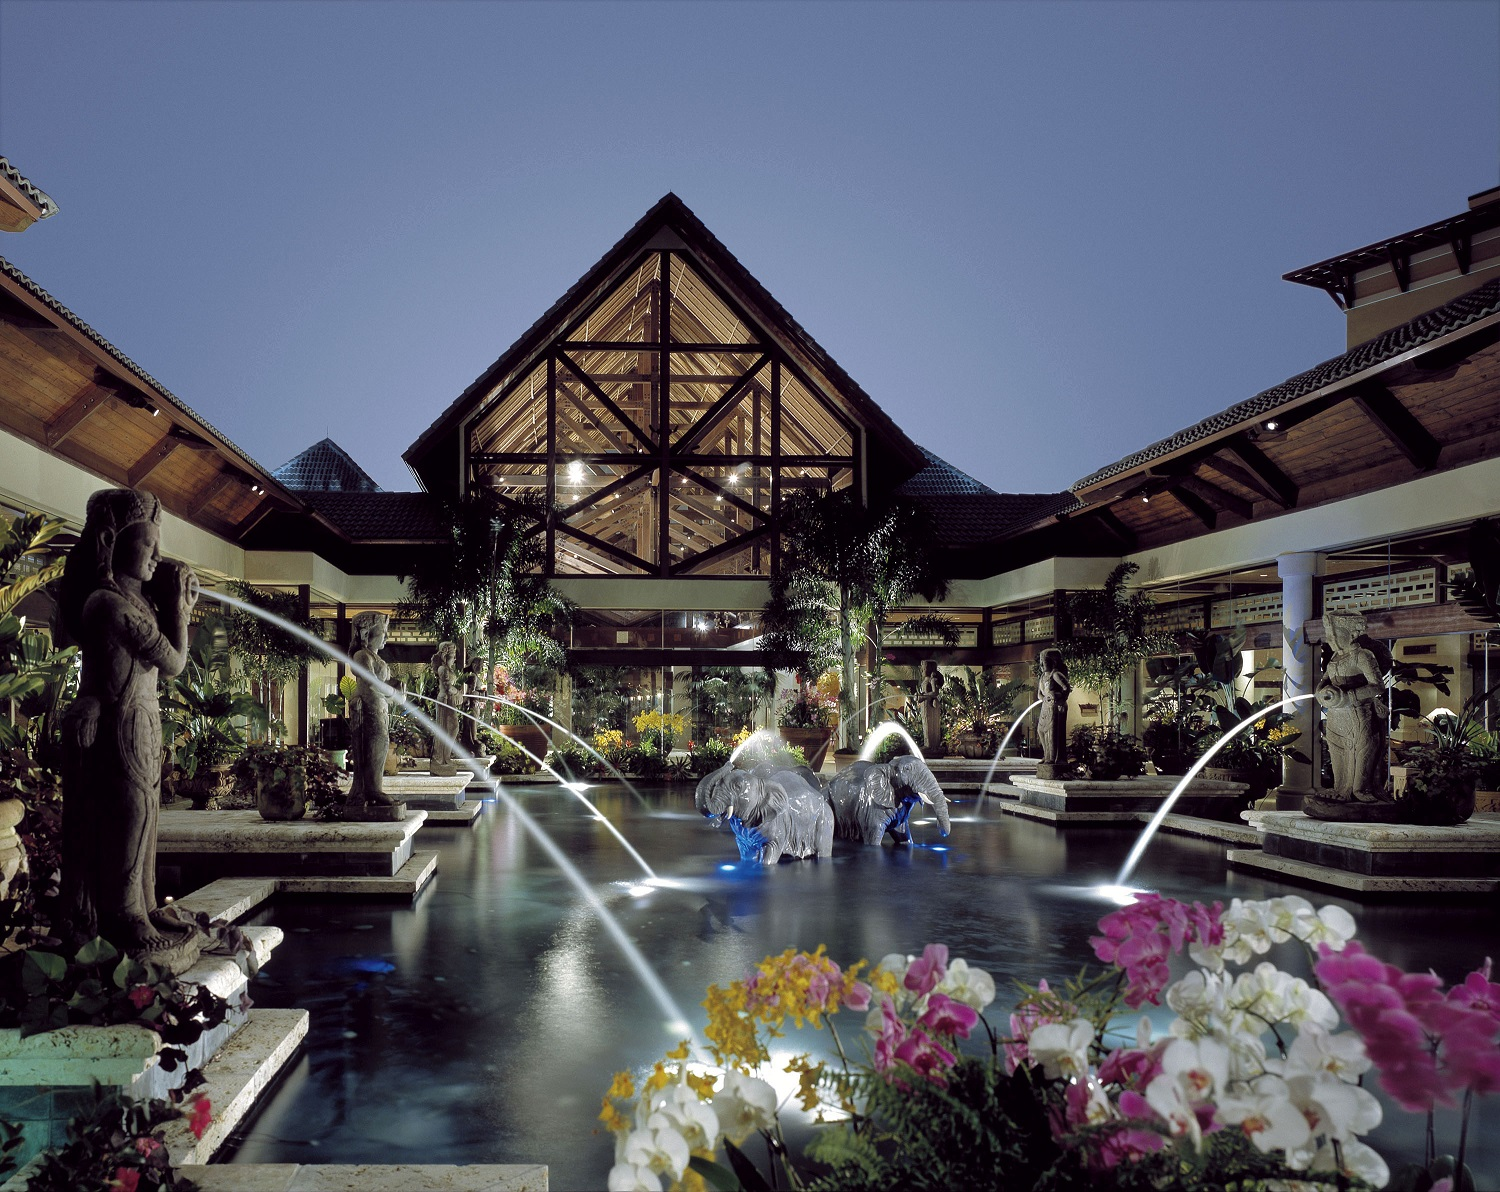 The Orchid Court at Loews Royal Pacific Resort. Image credit: Loews Hotels.